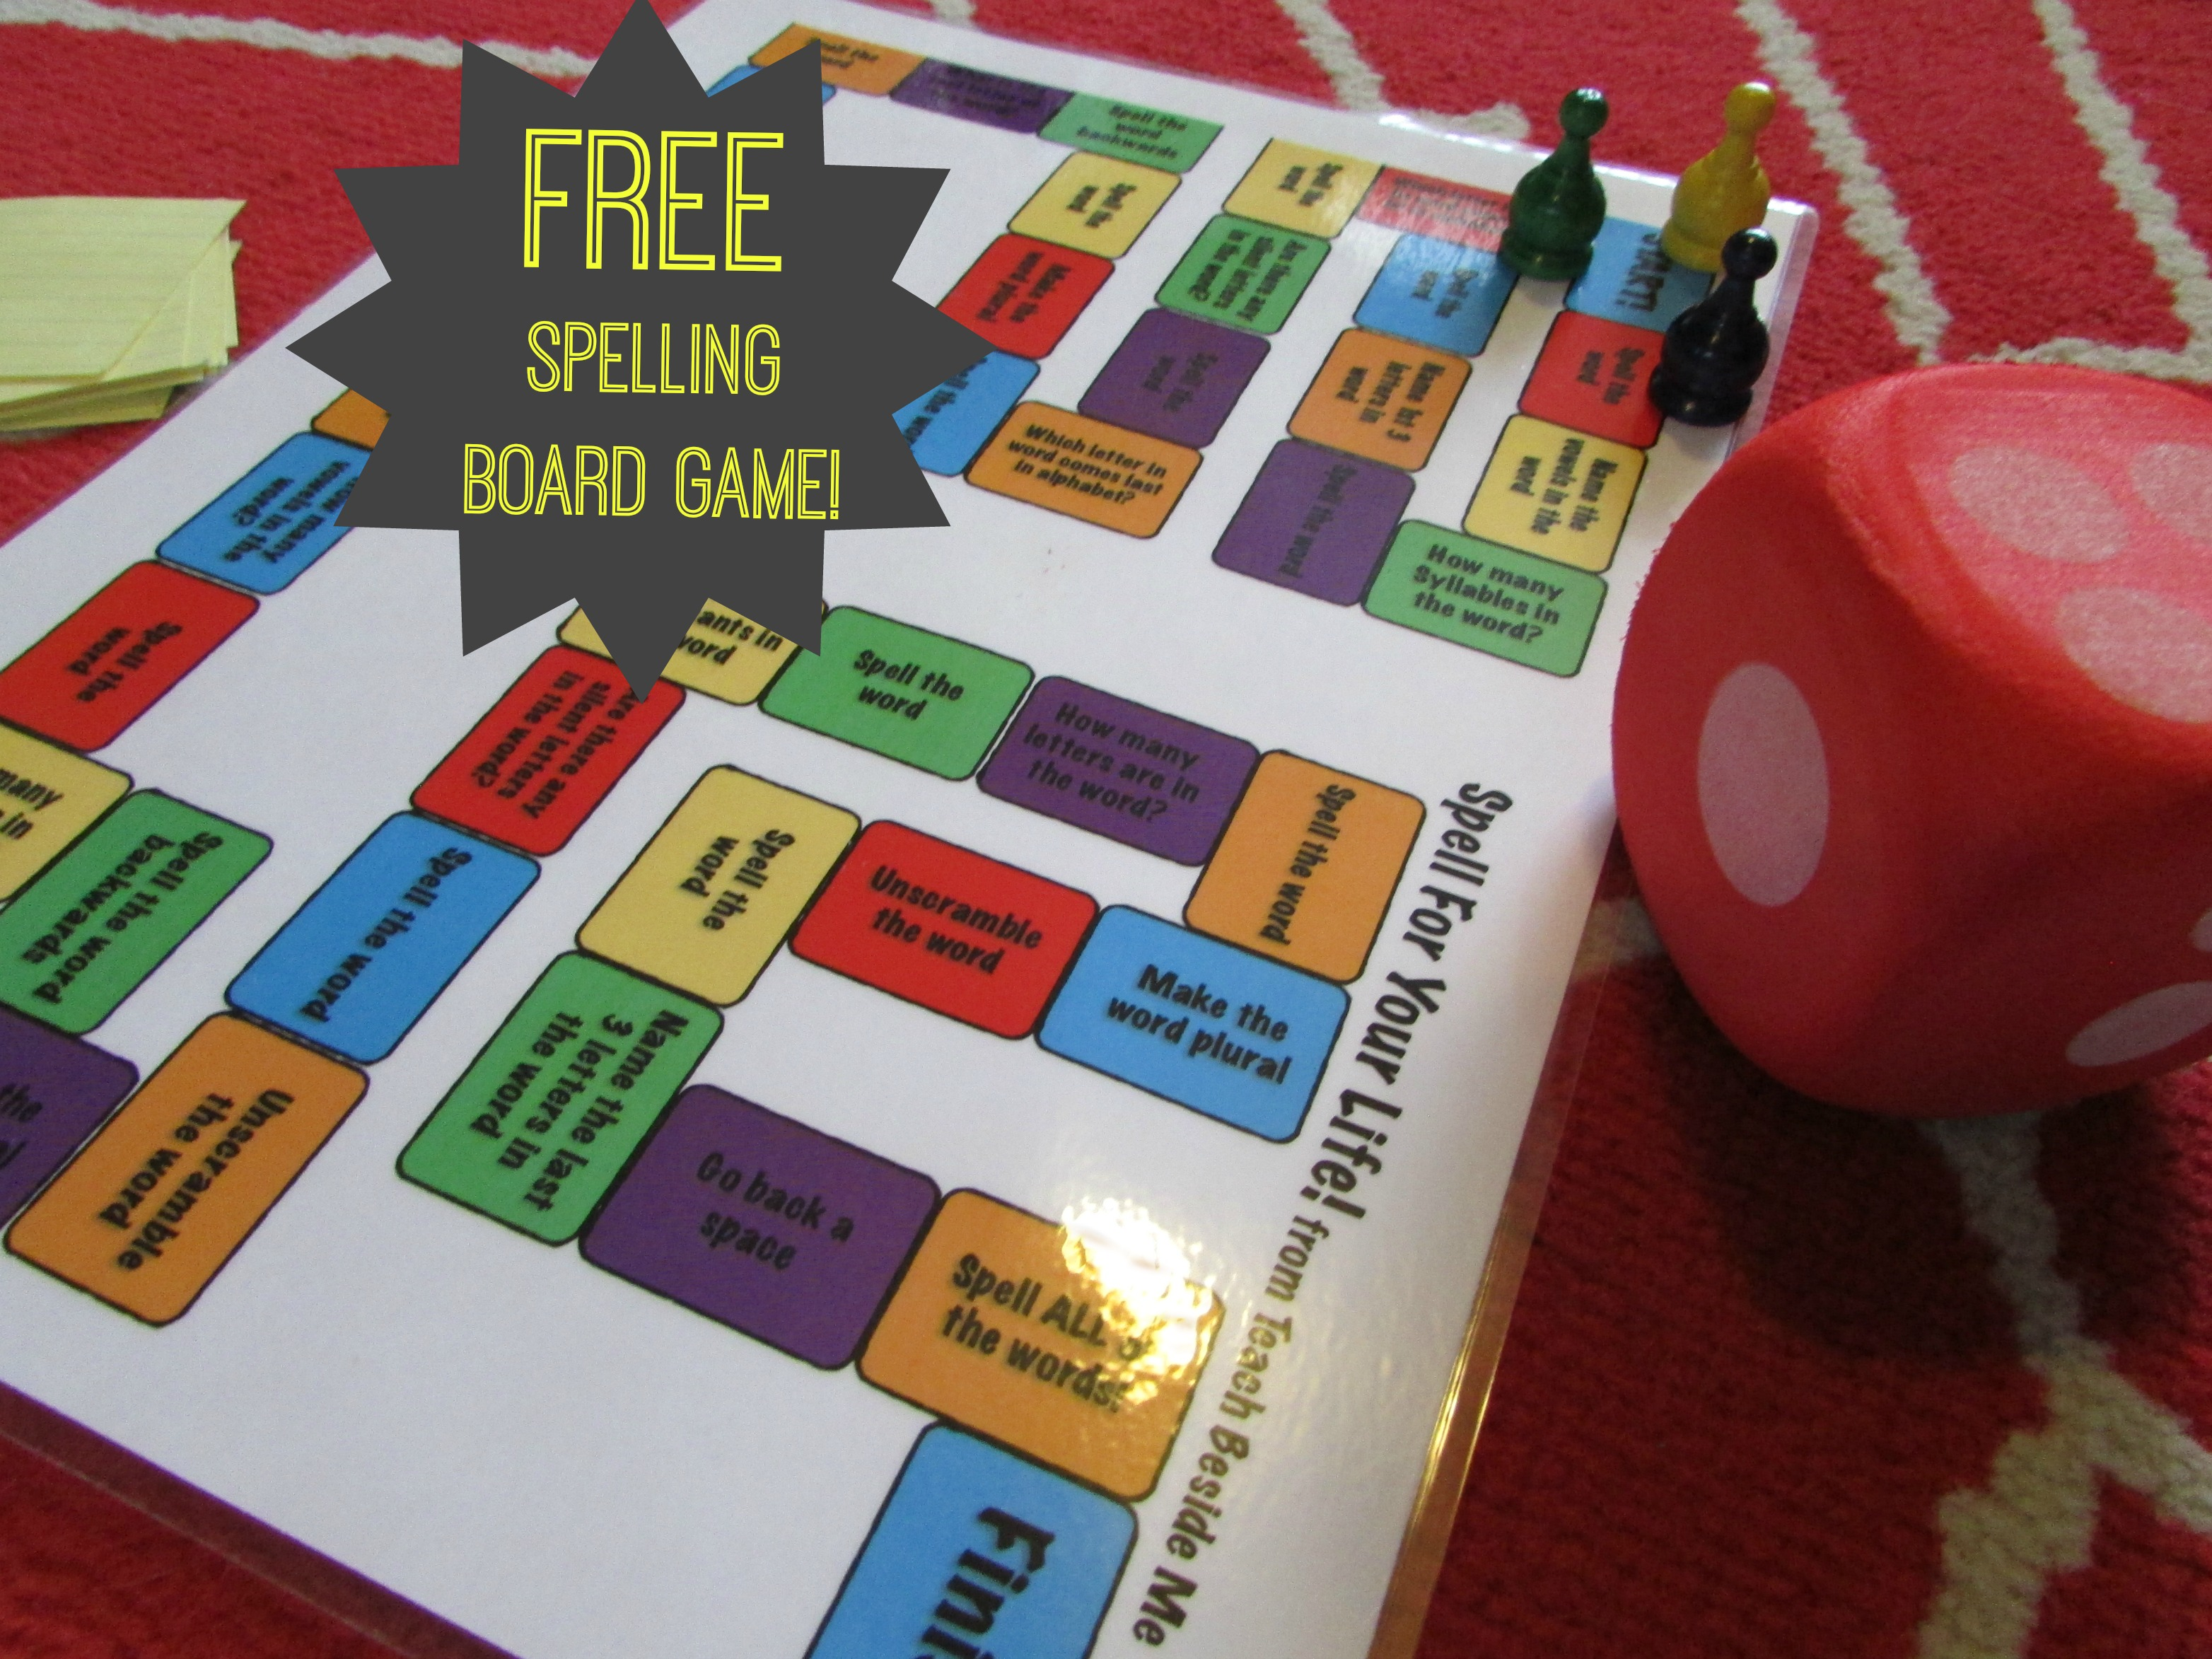 Apologise, Free online spelling games for adults are